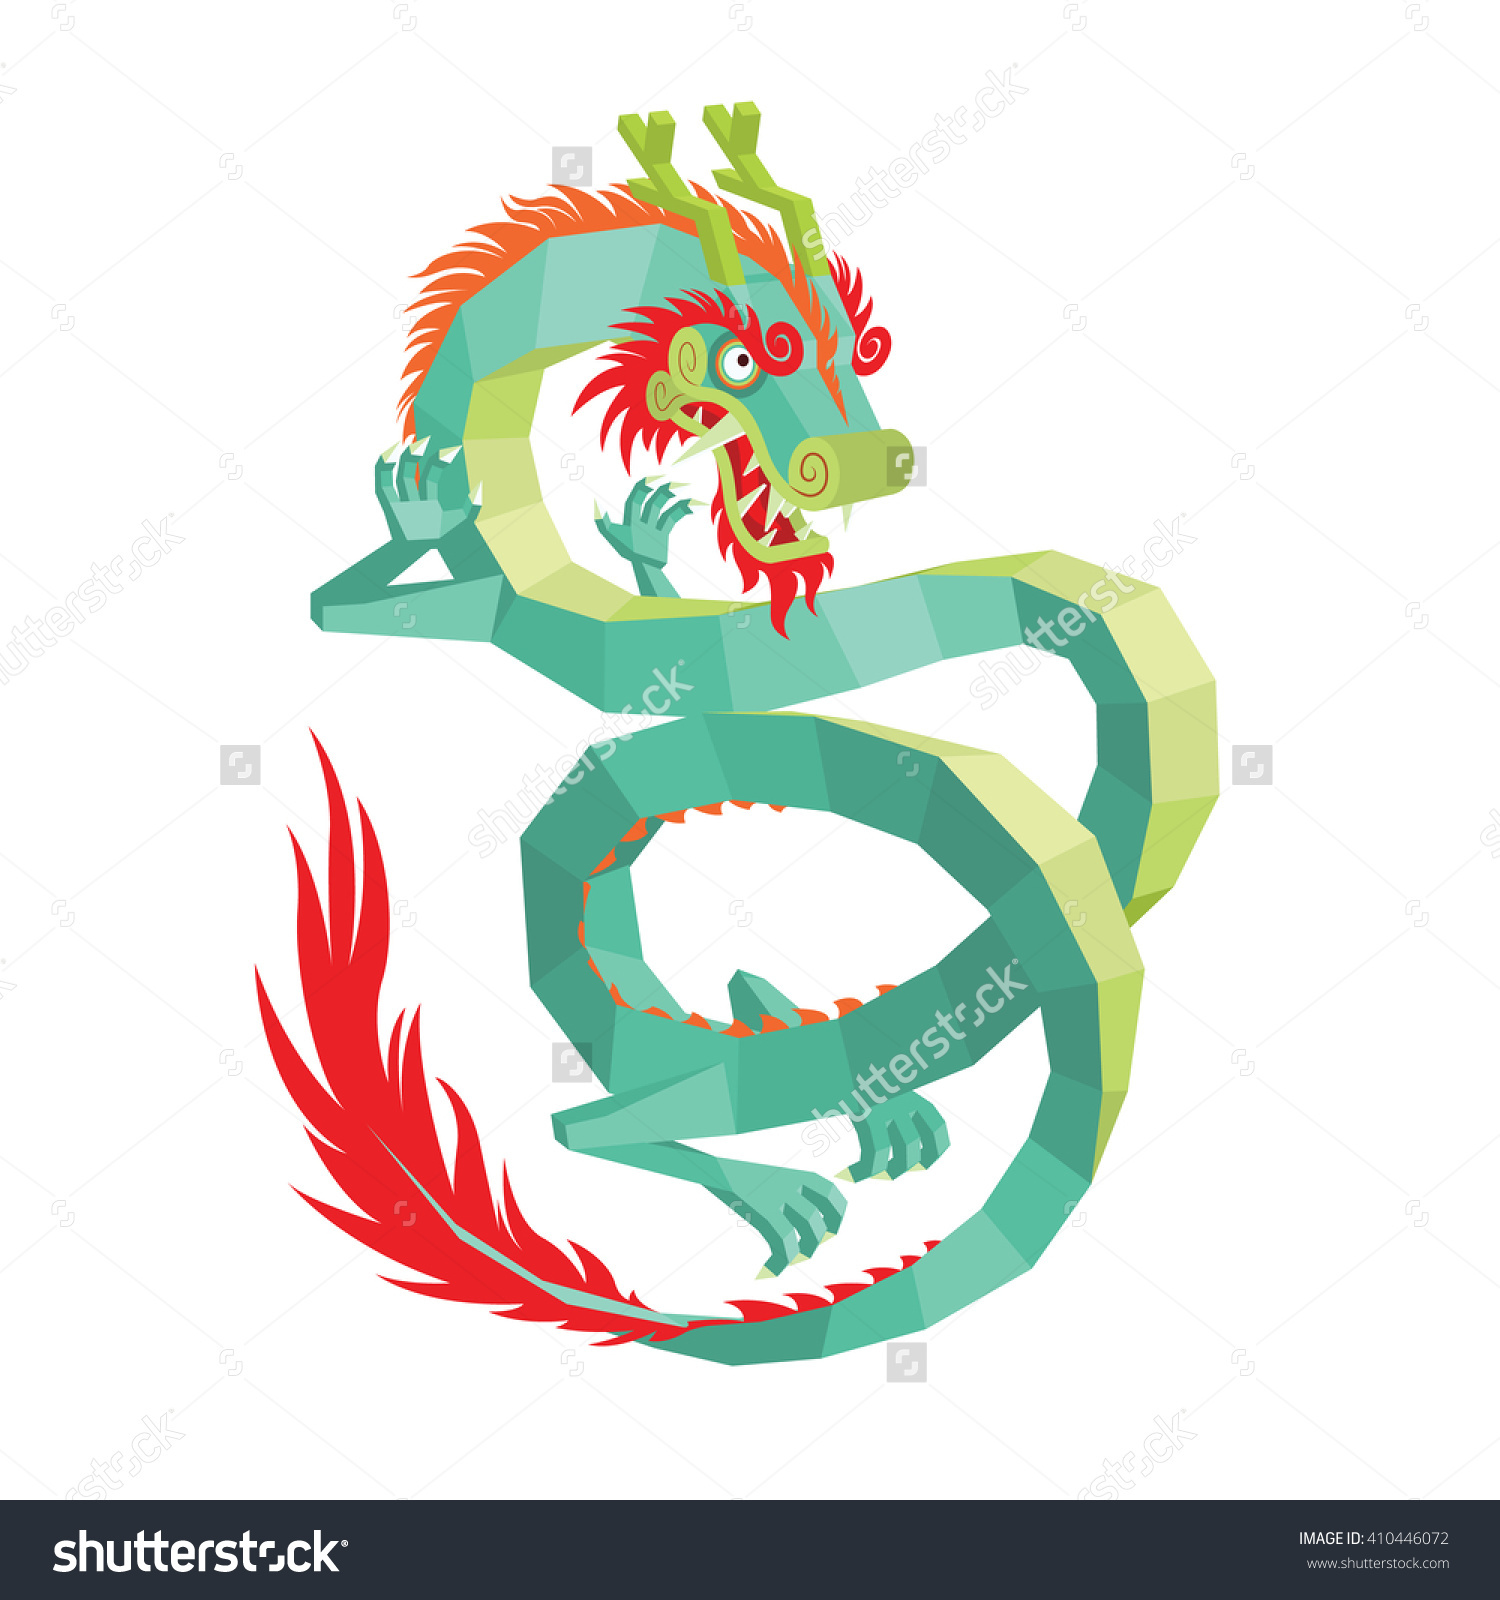 Legendary Creature Chinese Mythology Colorful Asian Stock Vector.